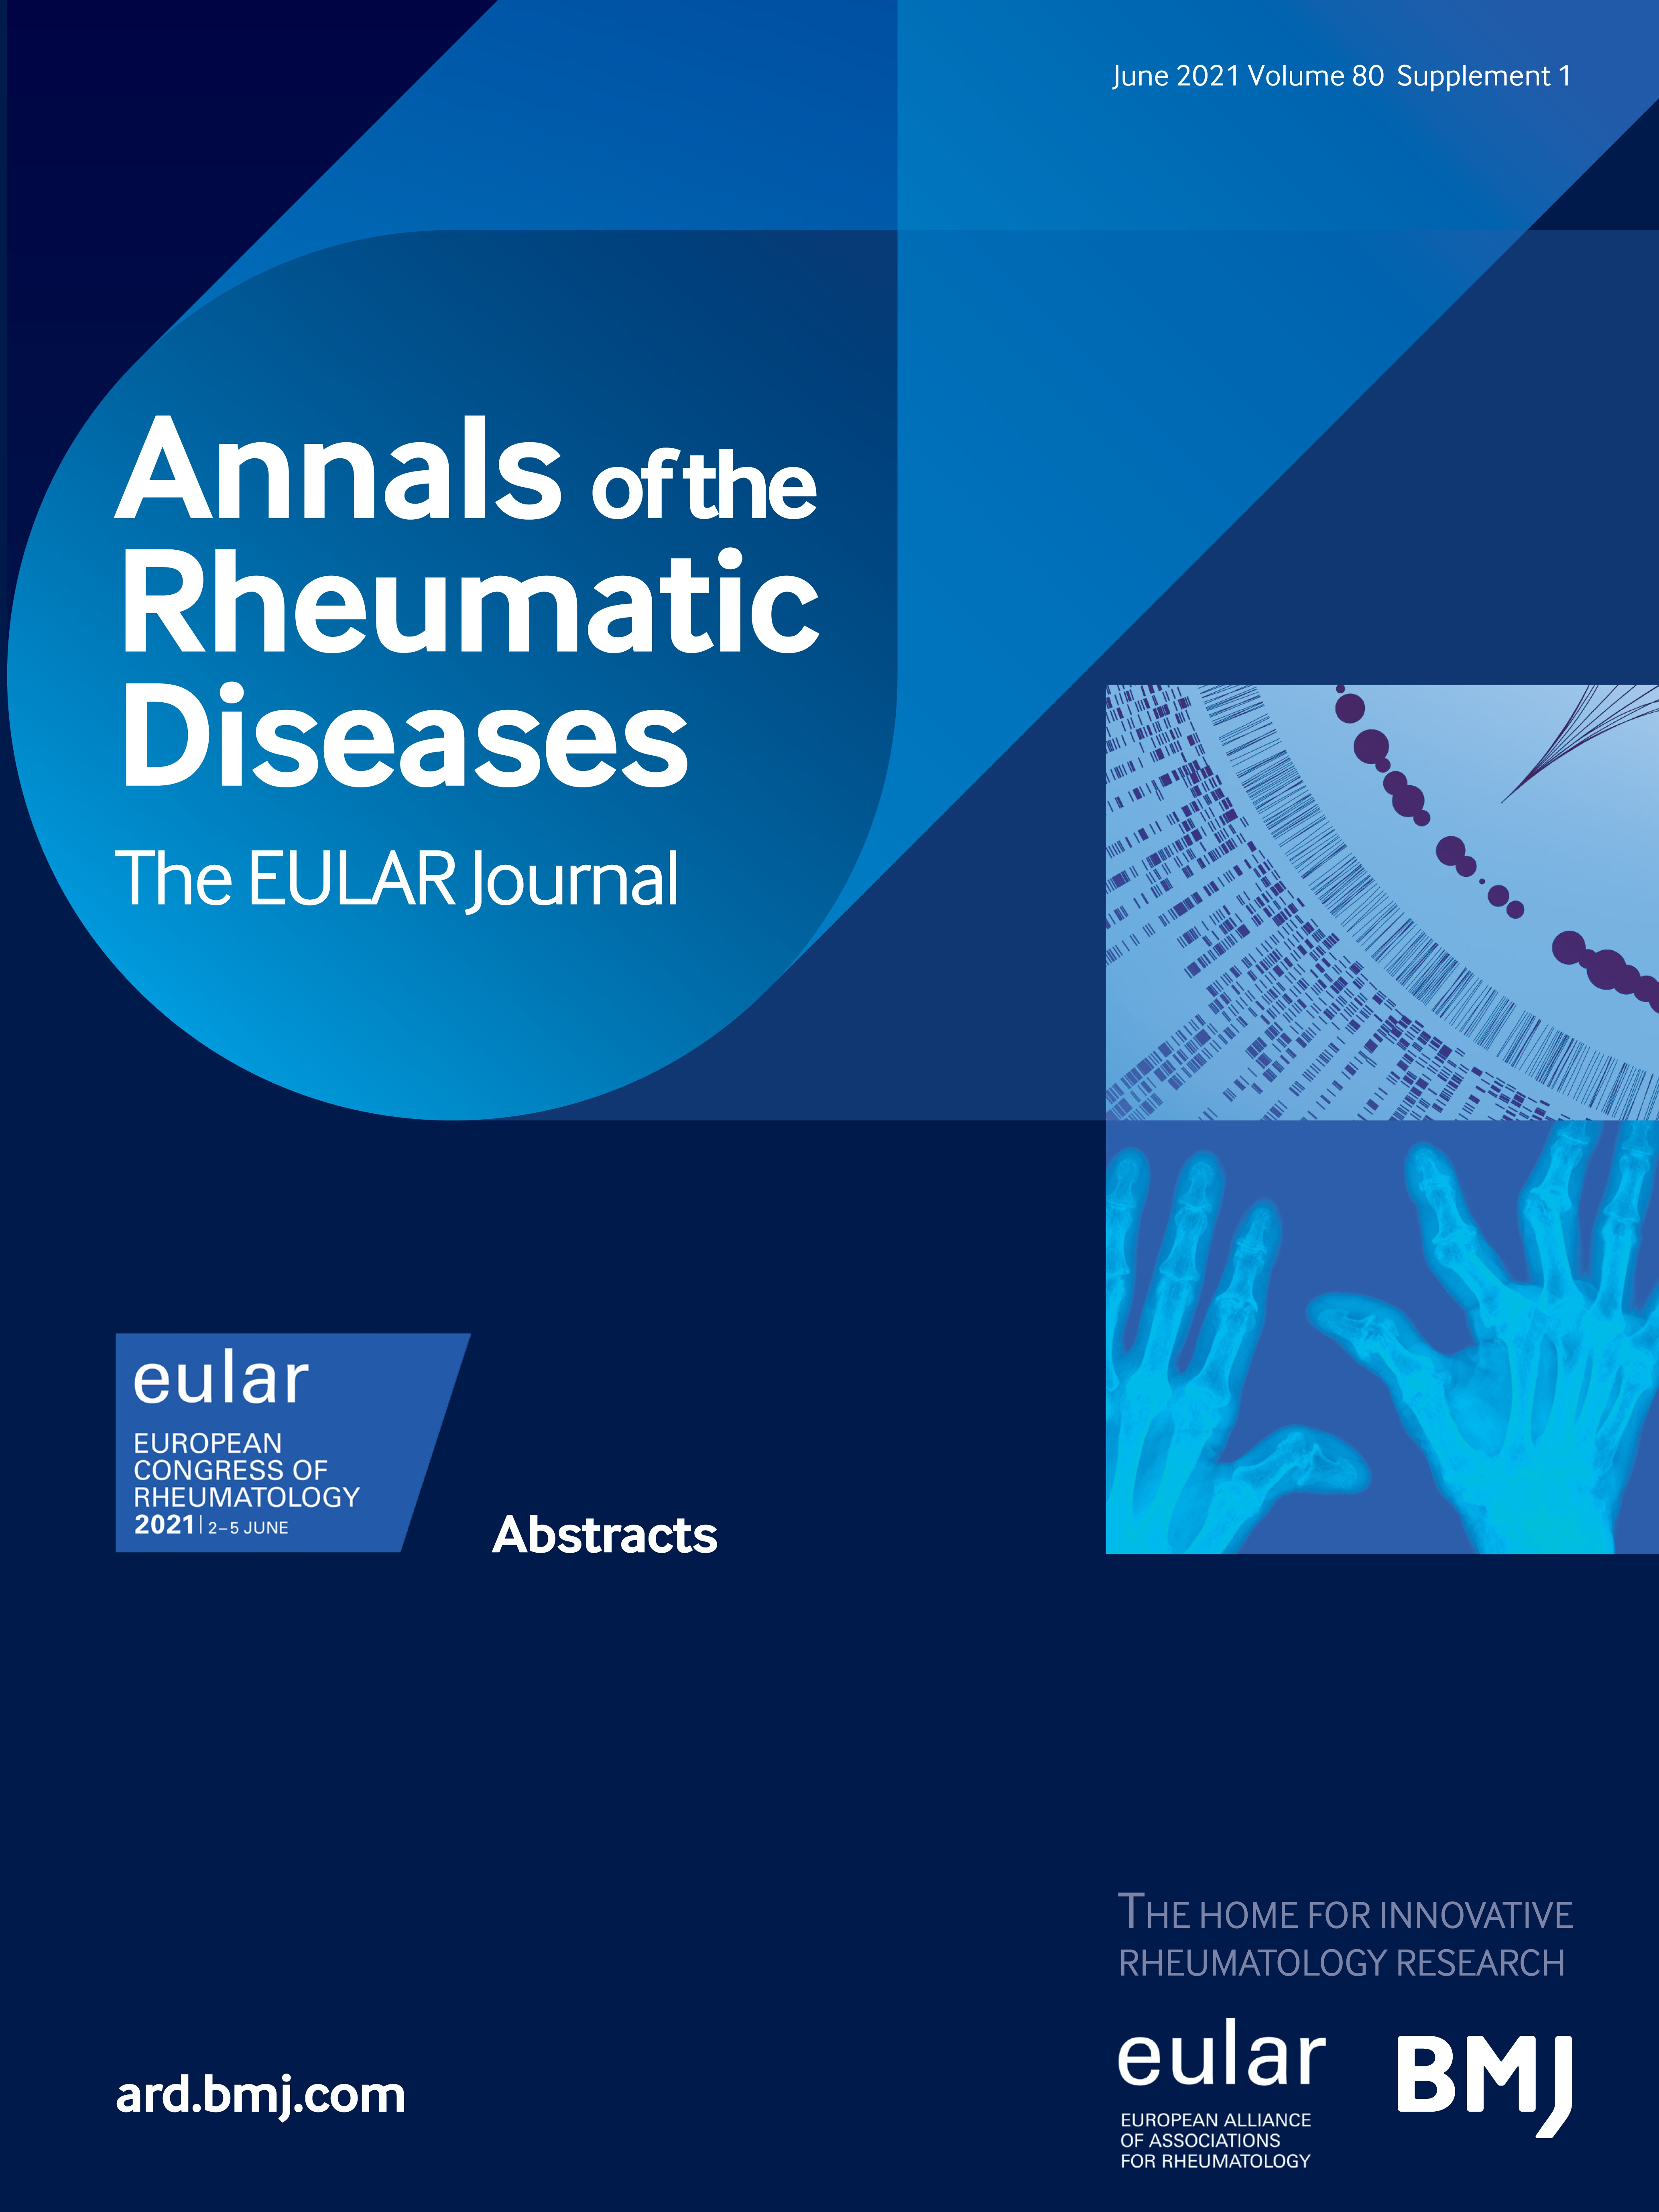 AB0717PREVALENCE OF MIGRAINE AND NEUROPATHIC PAIN AMONG PATIENTS WITH RHEUMATIC DISEASES